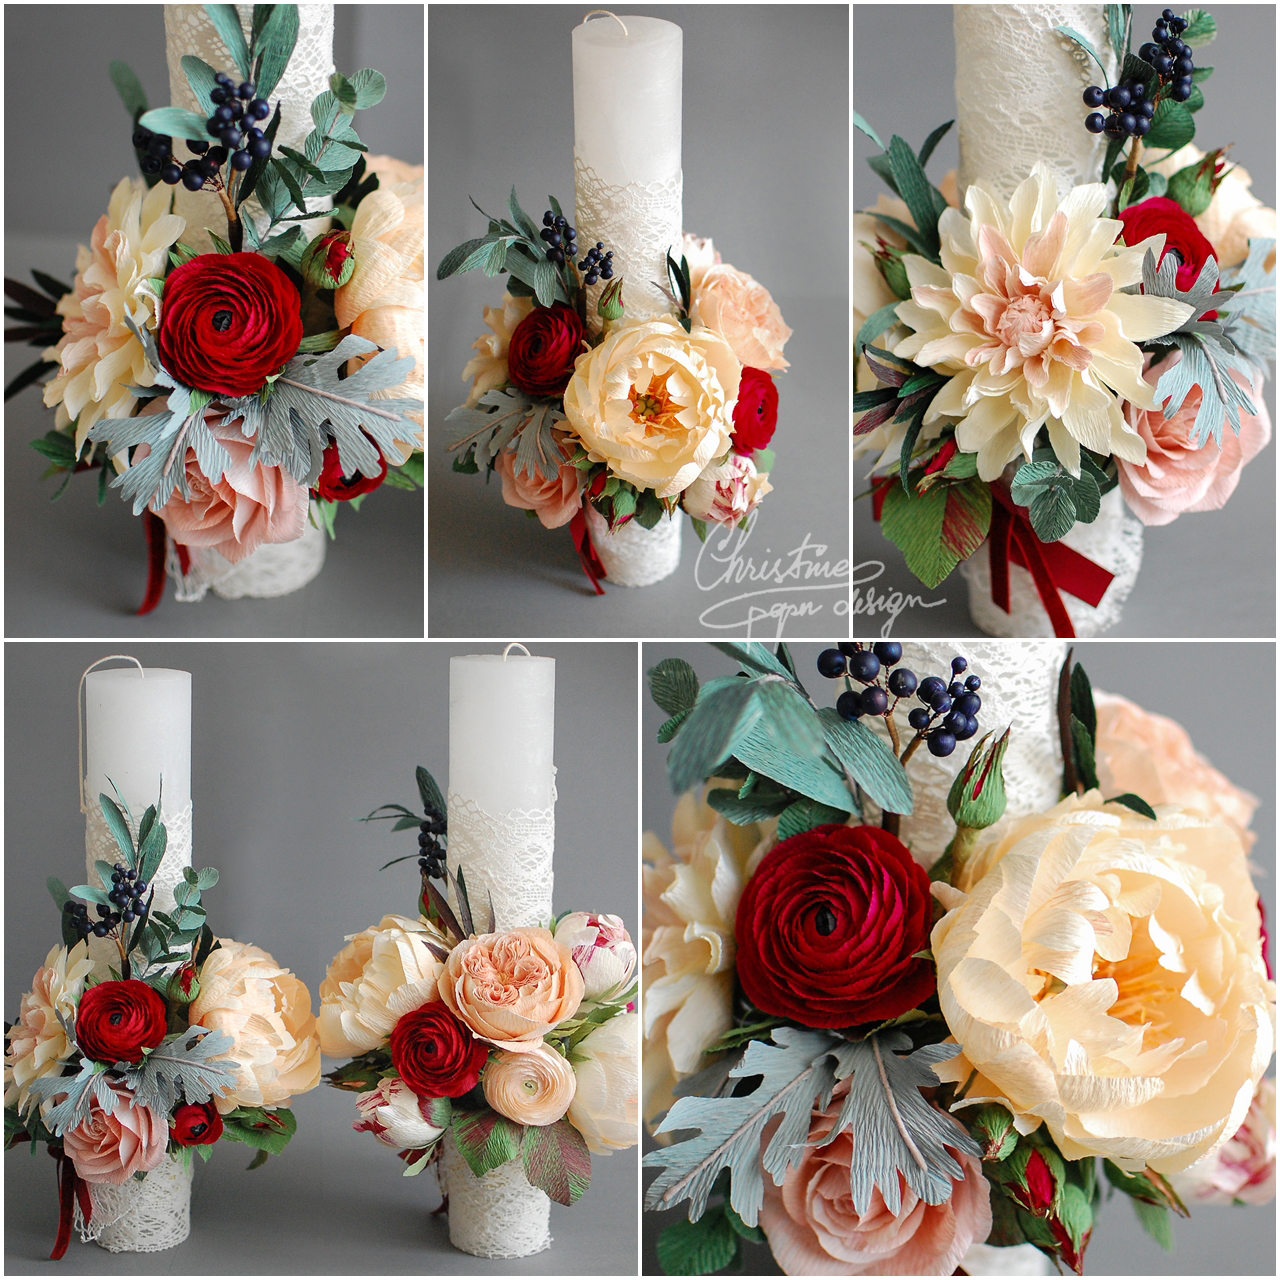 wedding candles - Christinepaperdesign.